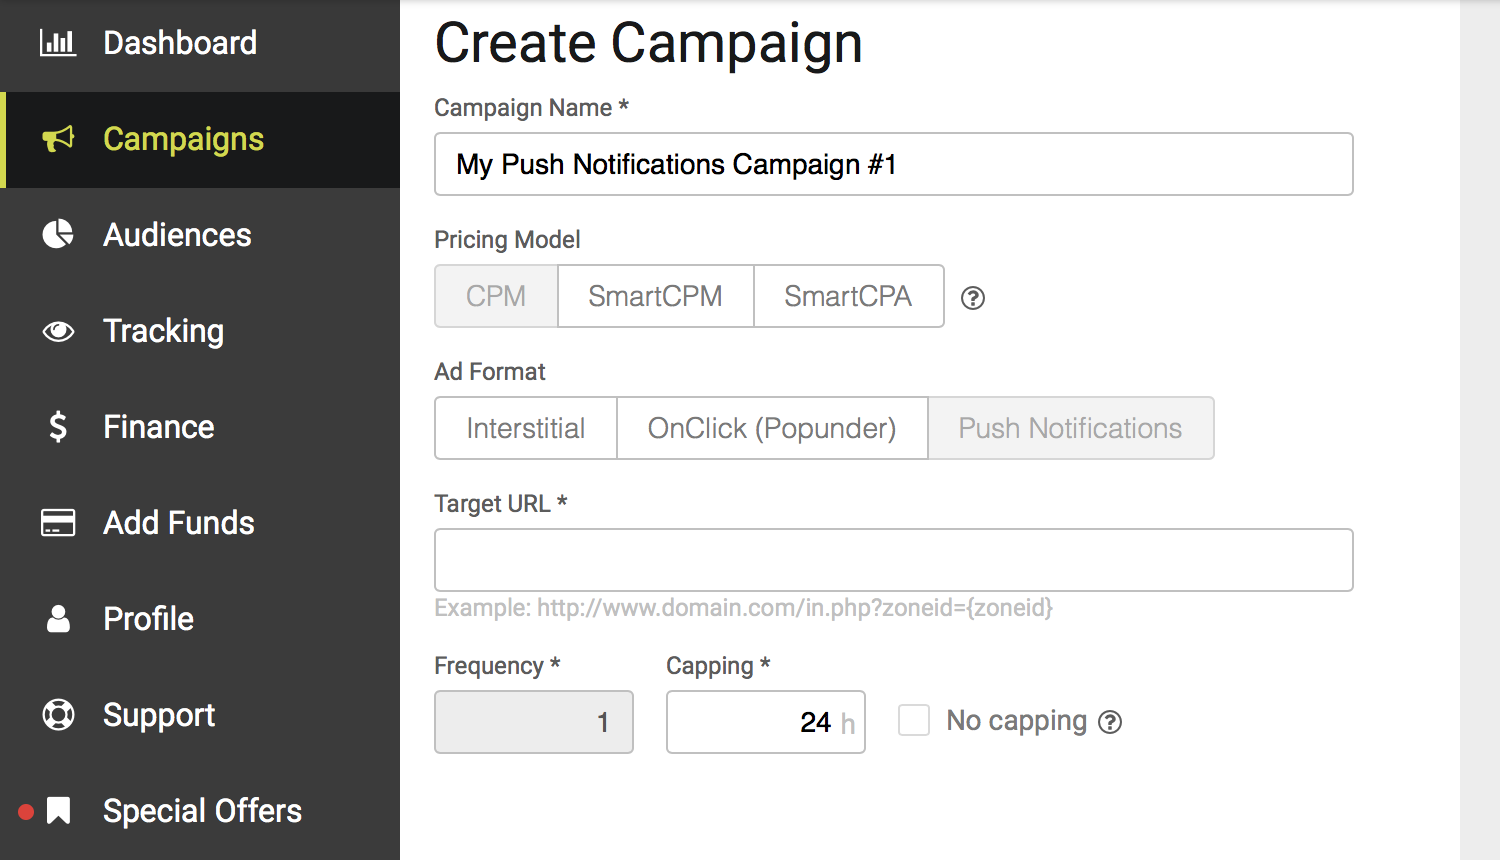 Create Push Notifications Campaign